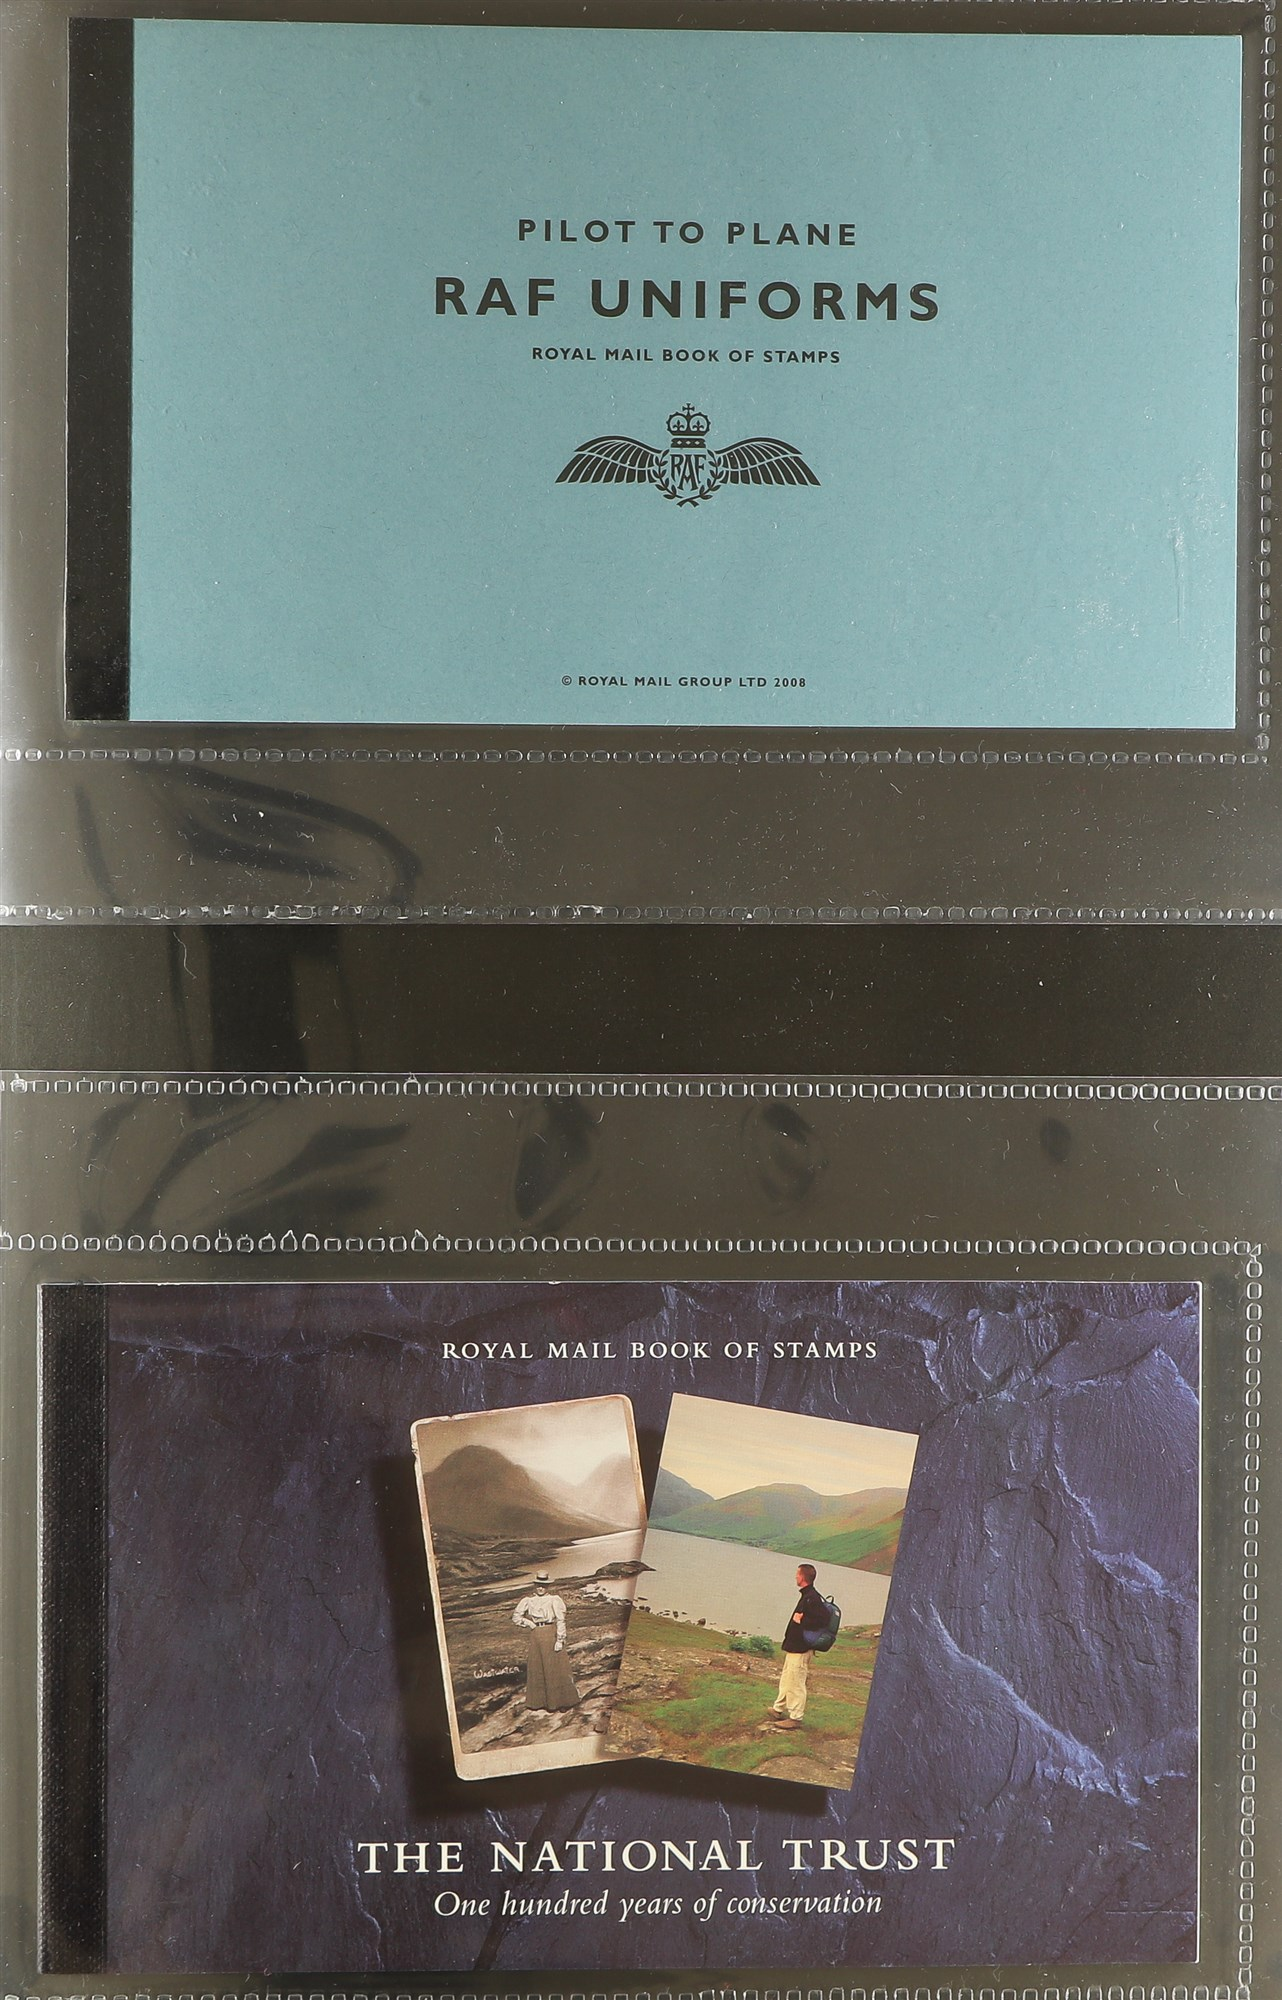 GB.ELIZABETH II PRESTIGE BOOKLET COLLECTION. The earliest being 'Beatrix Potter' (DX15) and the - Image 2 of 8